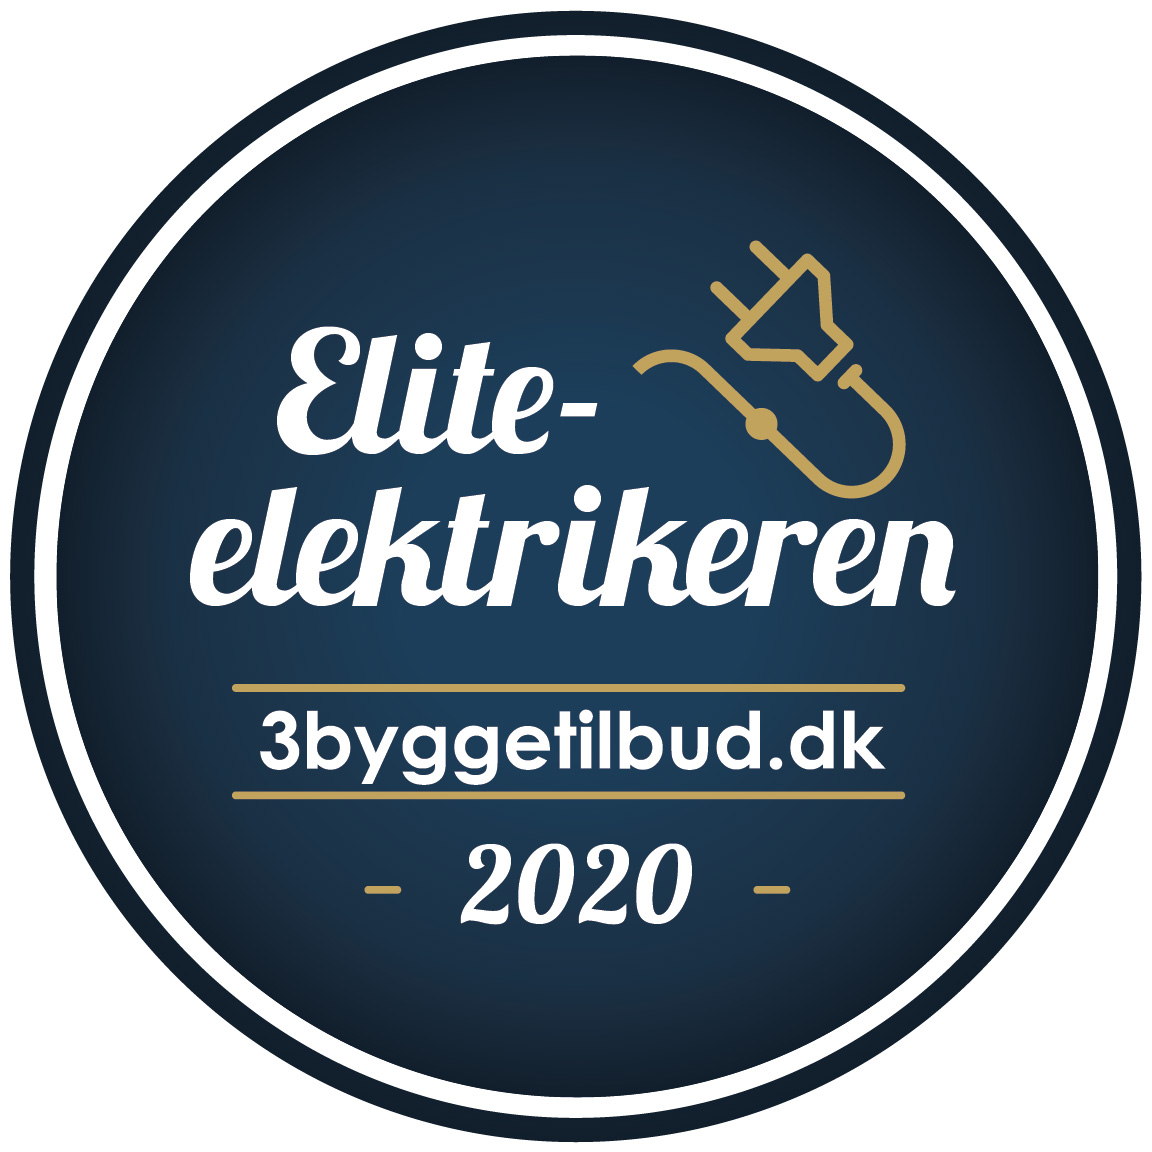 Elite elektrikeren 2020